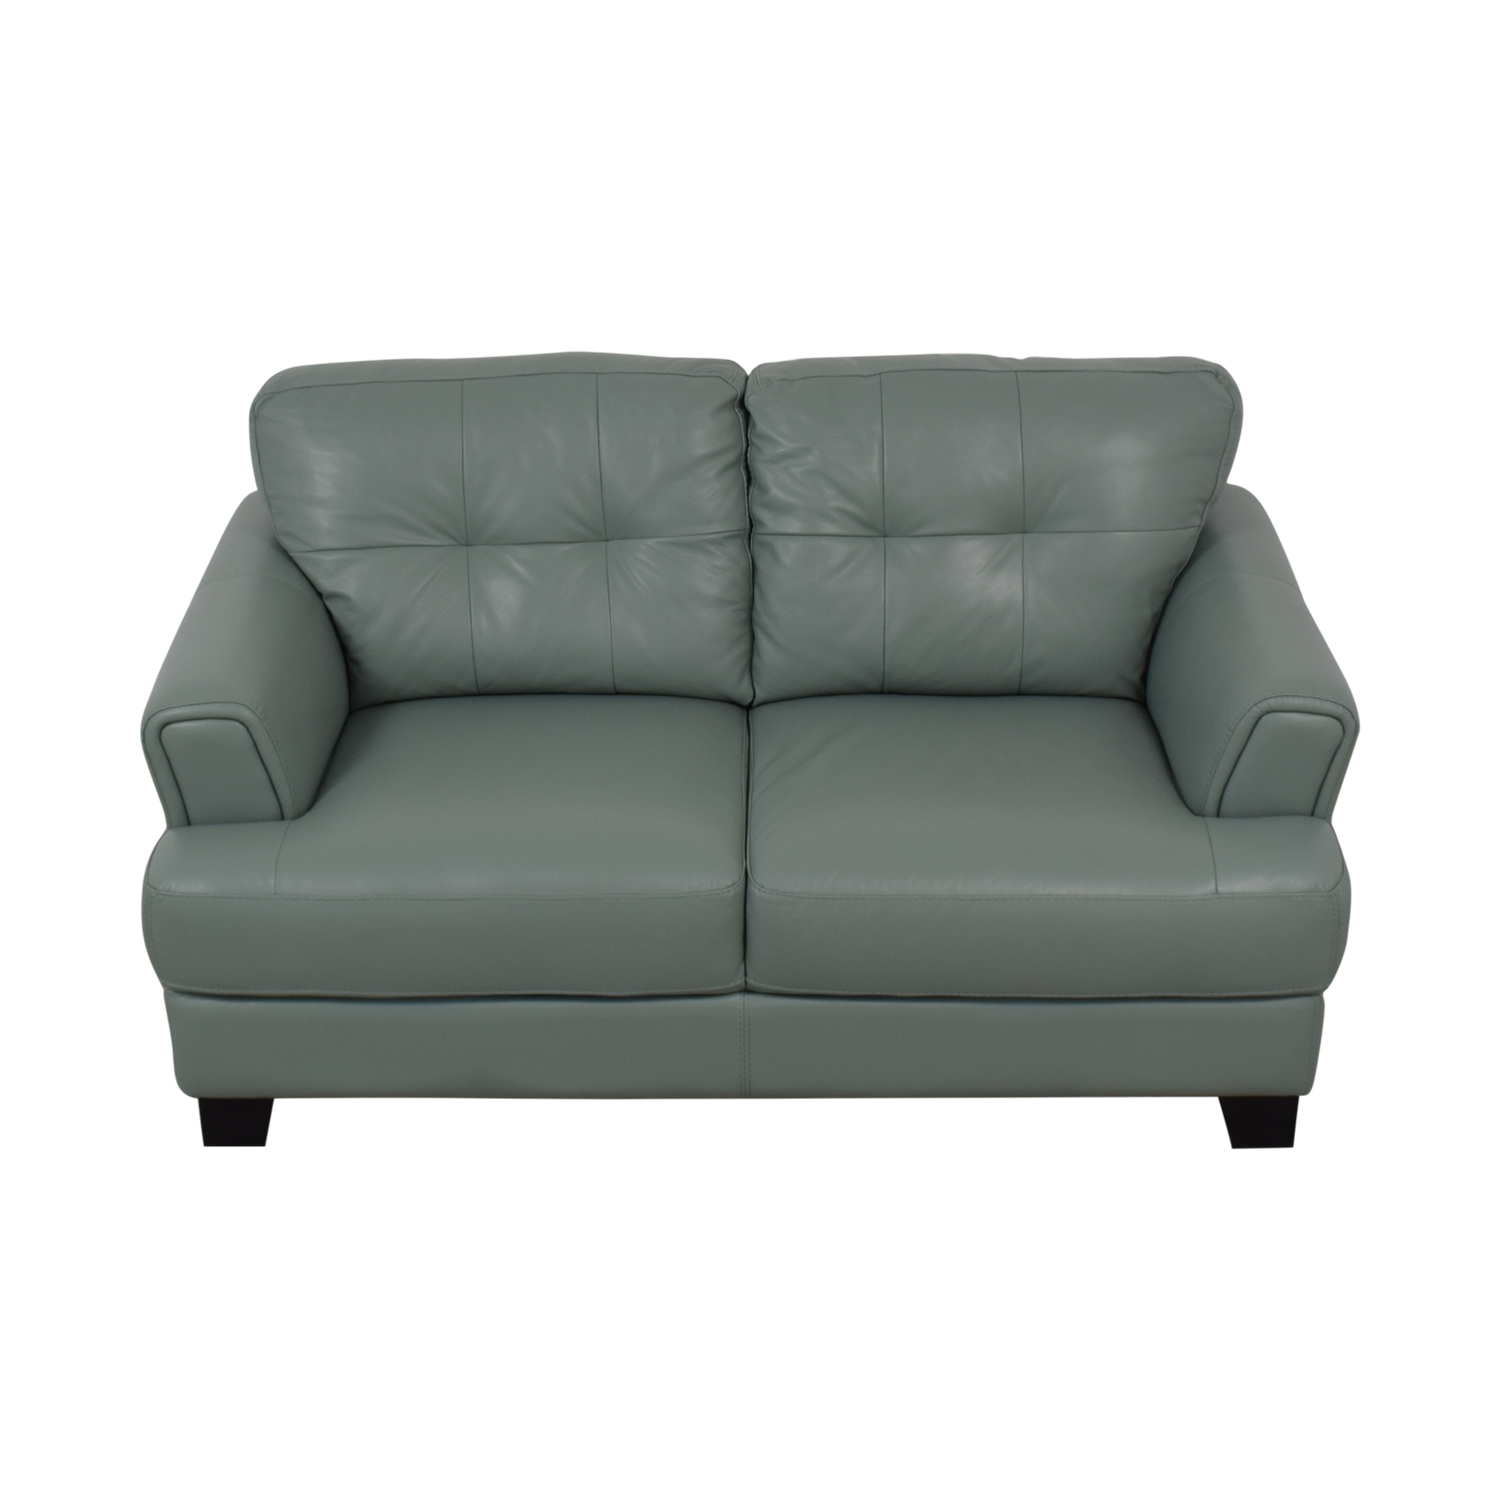 Chateau D'Ax Chateau D'Ax Seafoam Green Tufted Loveseat on sale